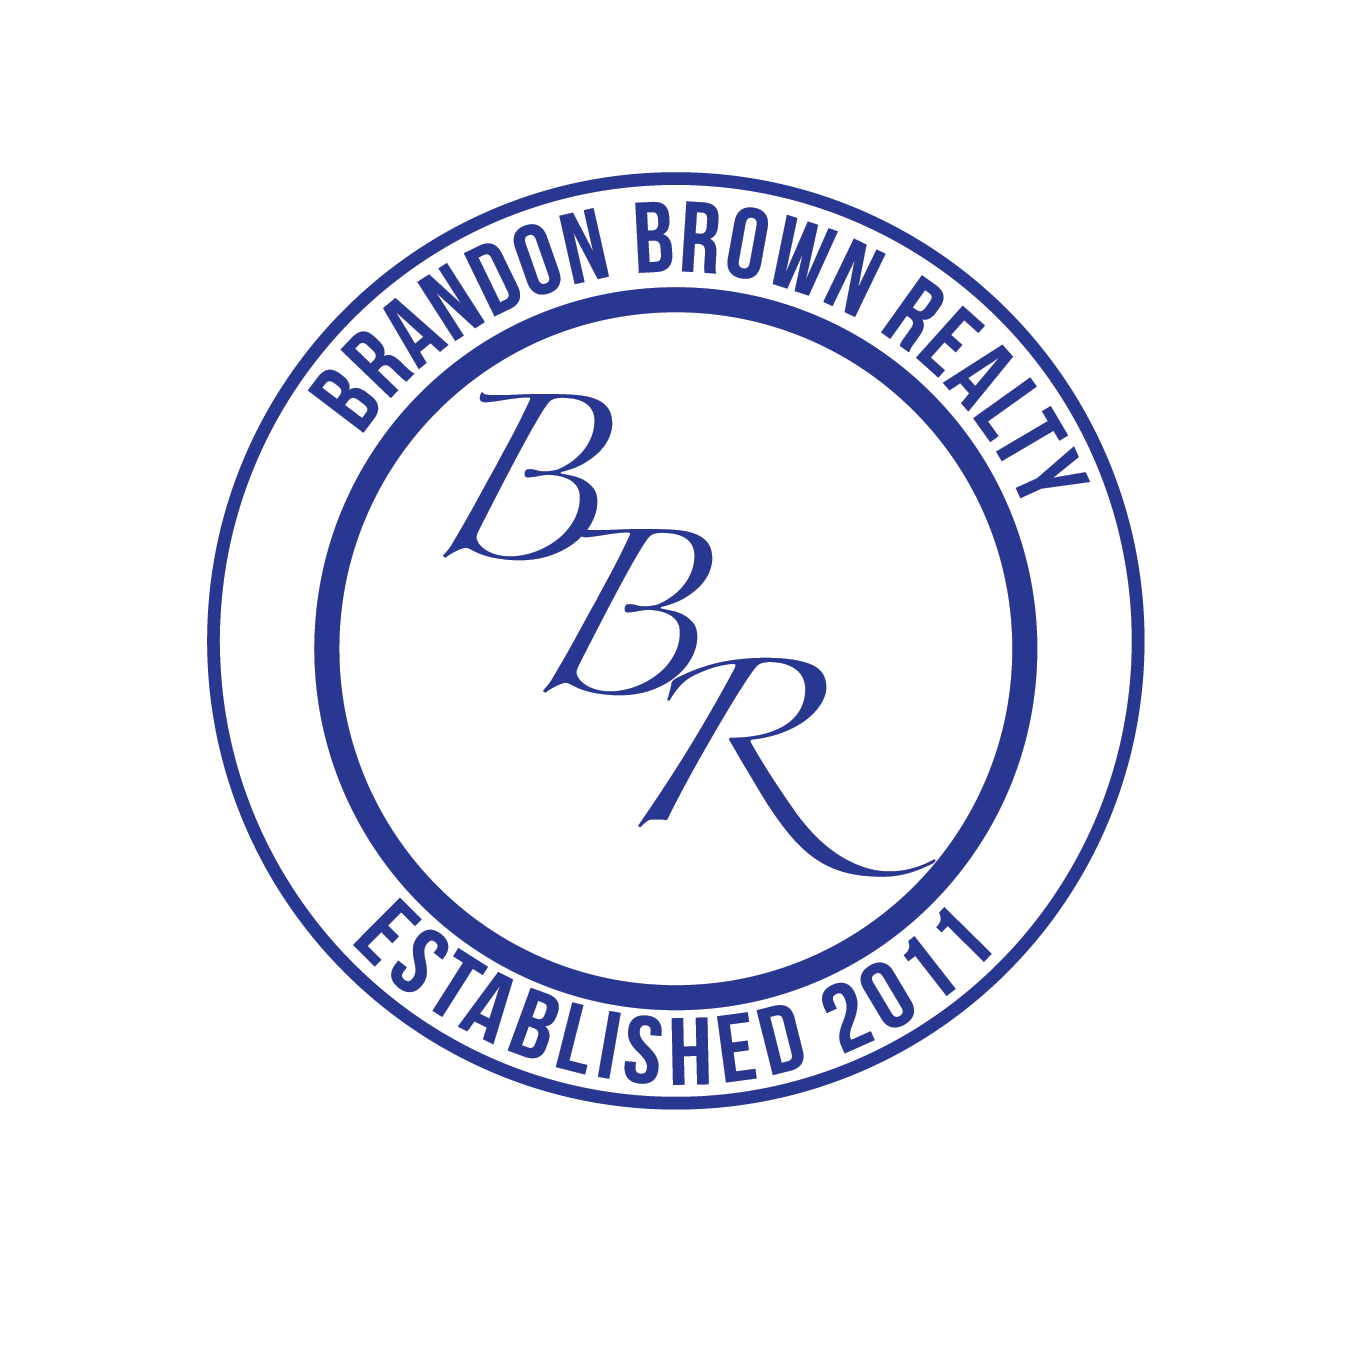 Brandon Brown Realty LLC